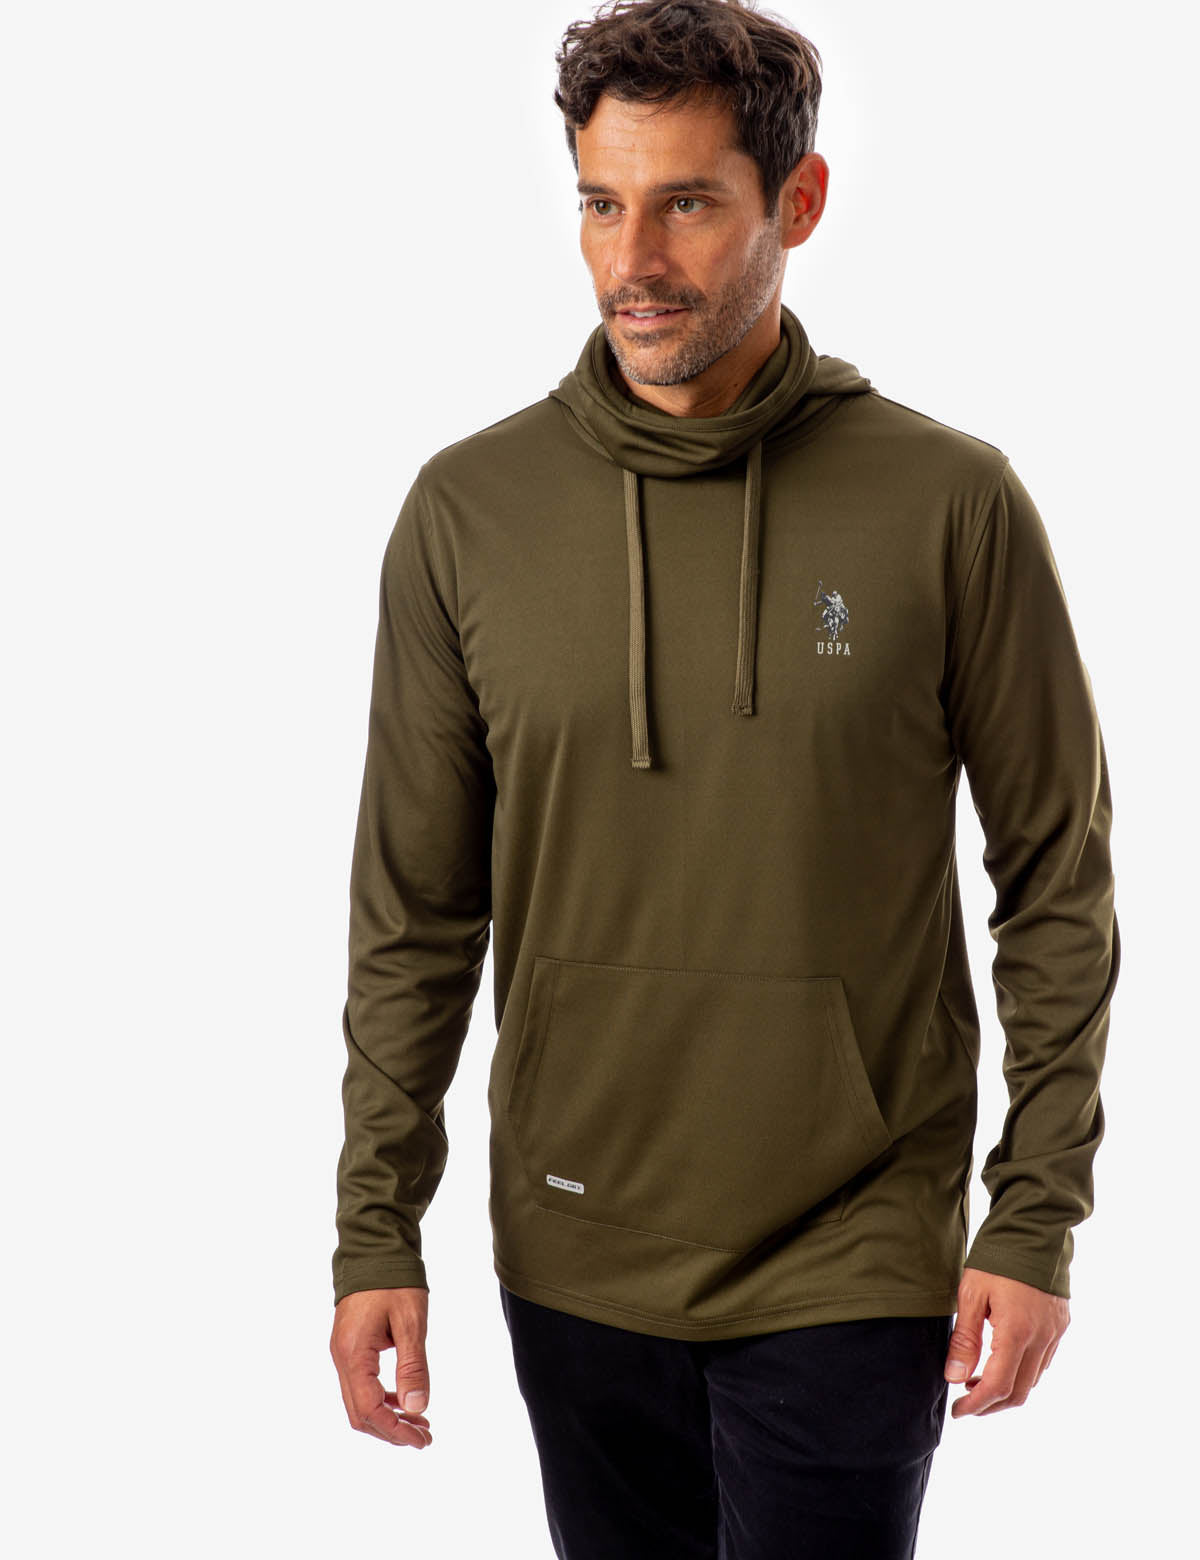 PULLOVER MASK HOODIE - U.S. Polo Assn.